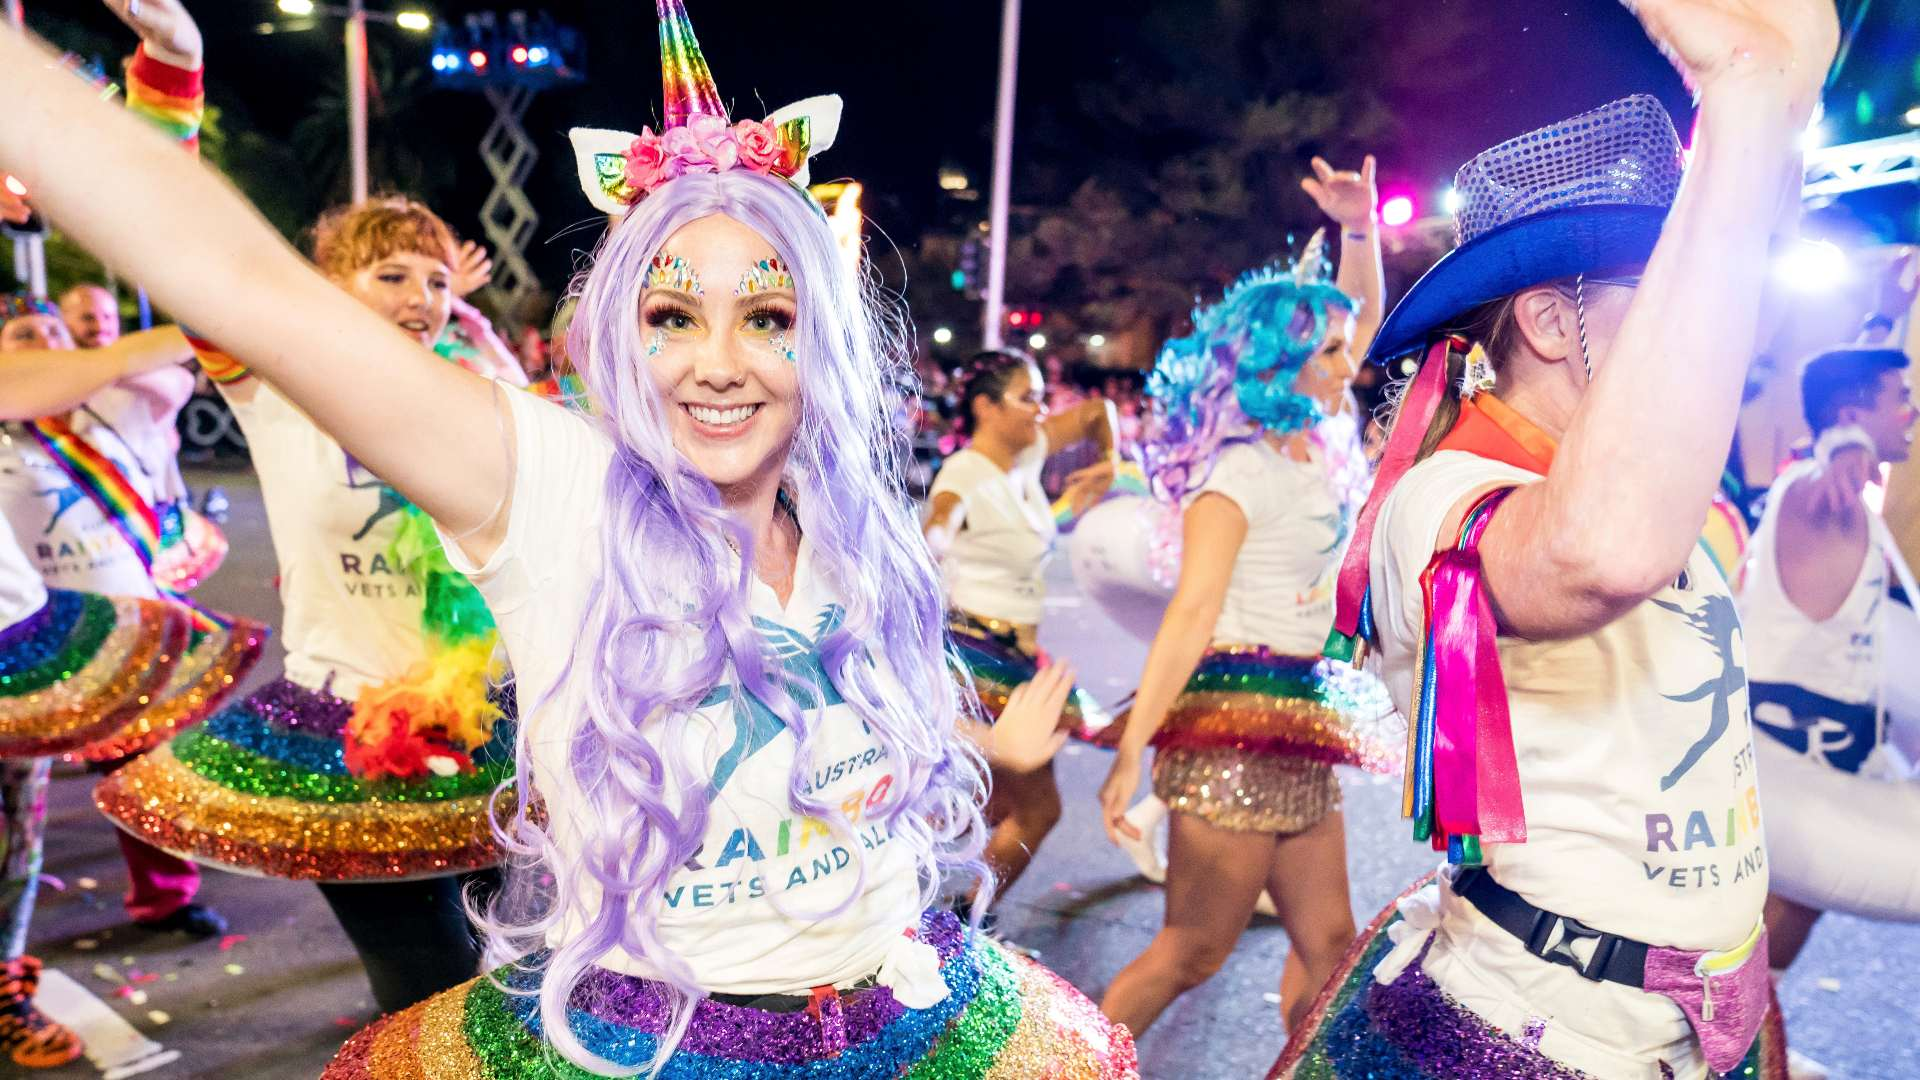 Sydney Gay and Lesbian Mardi Gras Parade participants